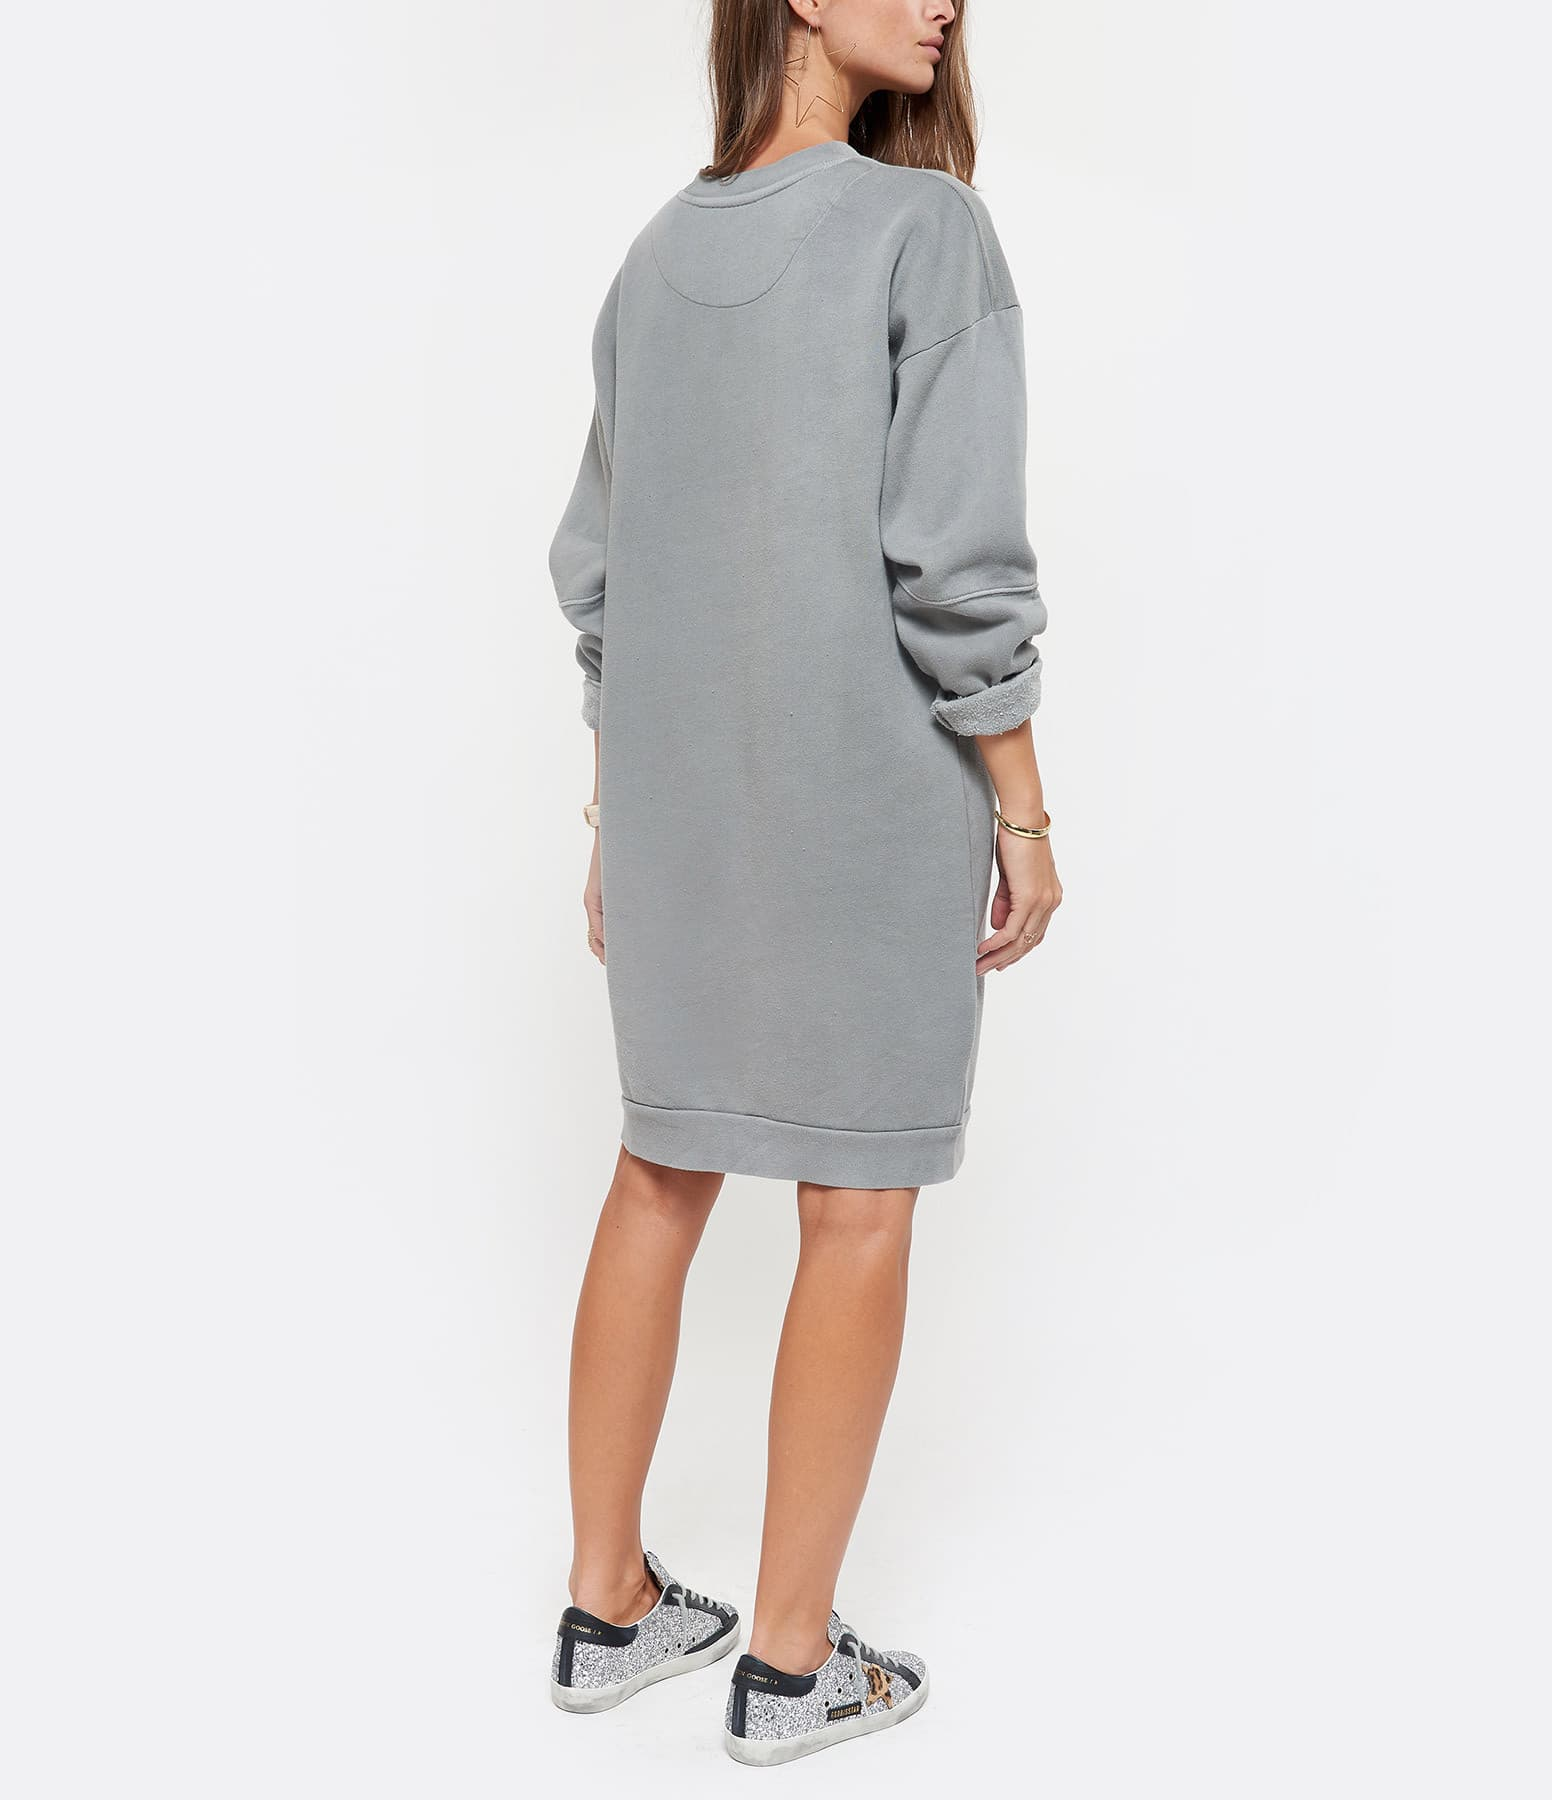 NEWTONE - Robe Wings Coton Gris